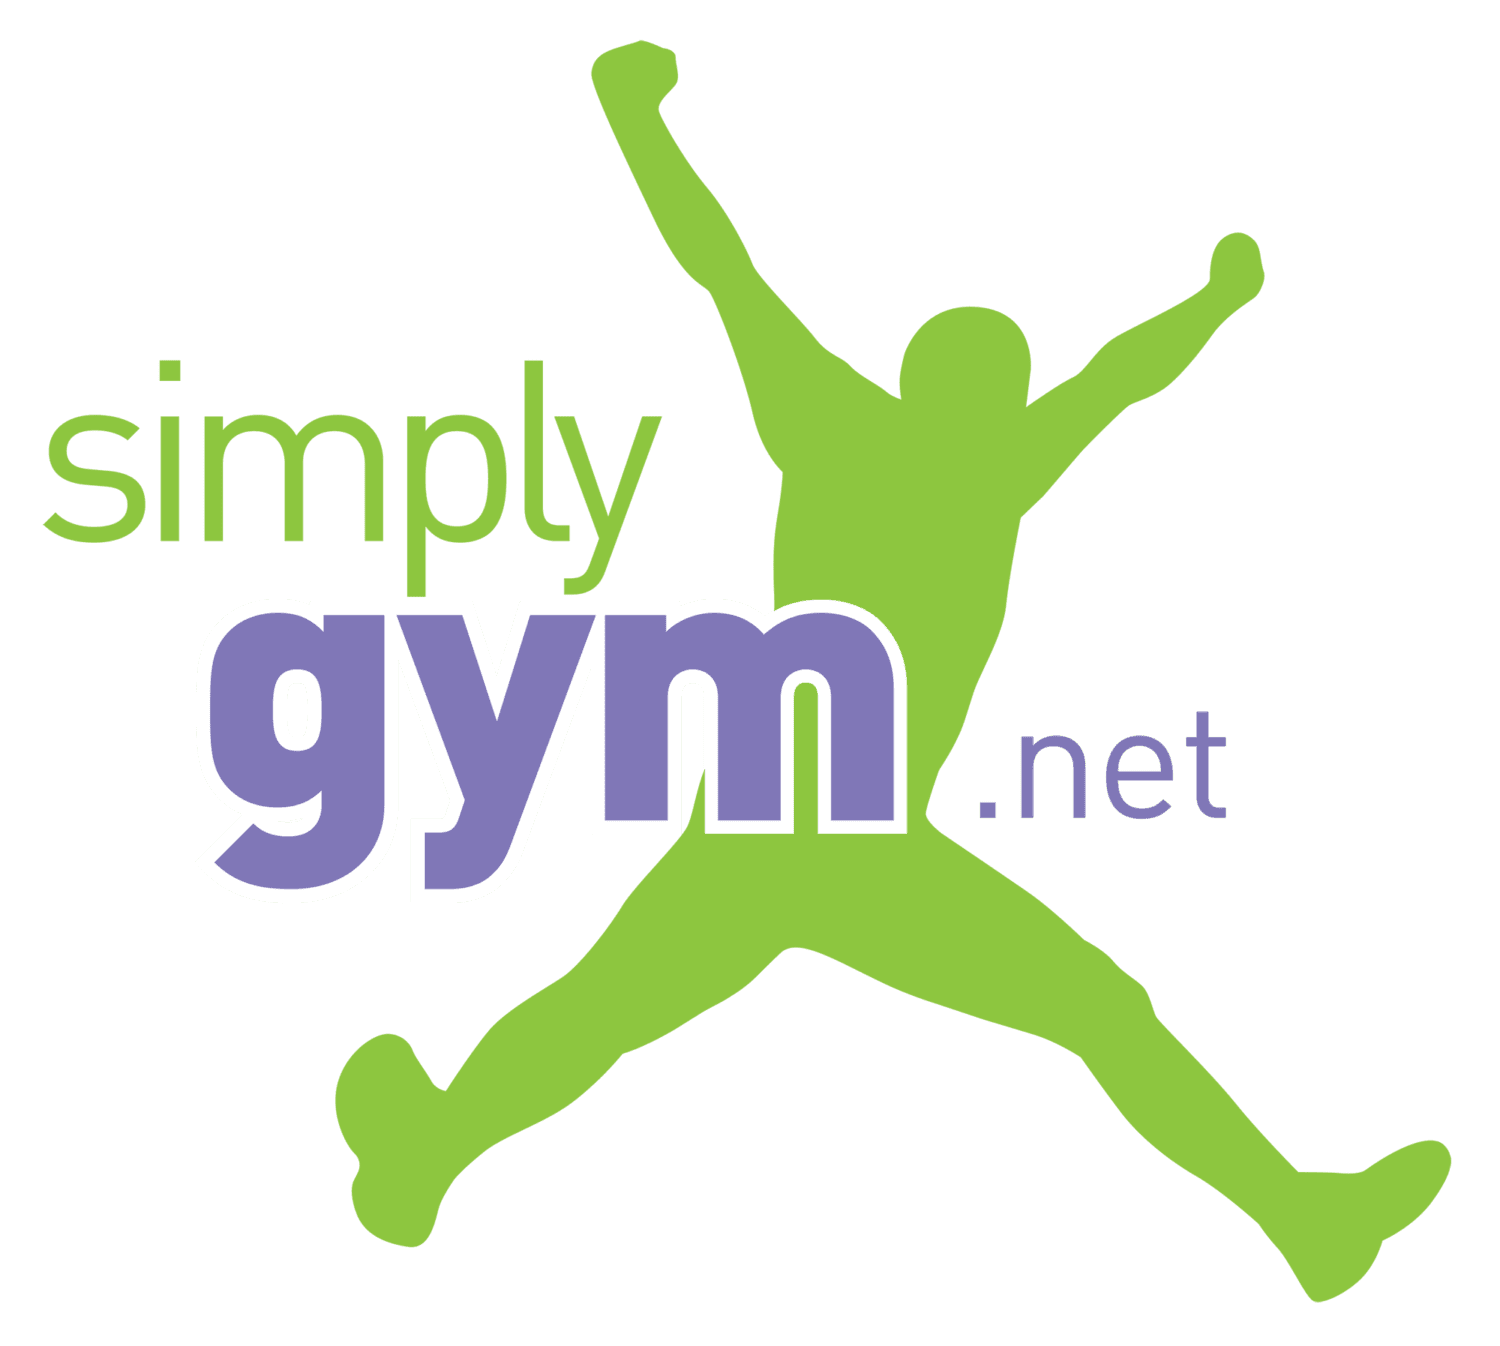 Simply Gym's logo, available at The Read Dragon Centre